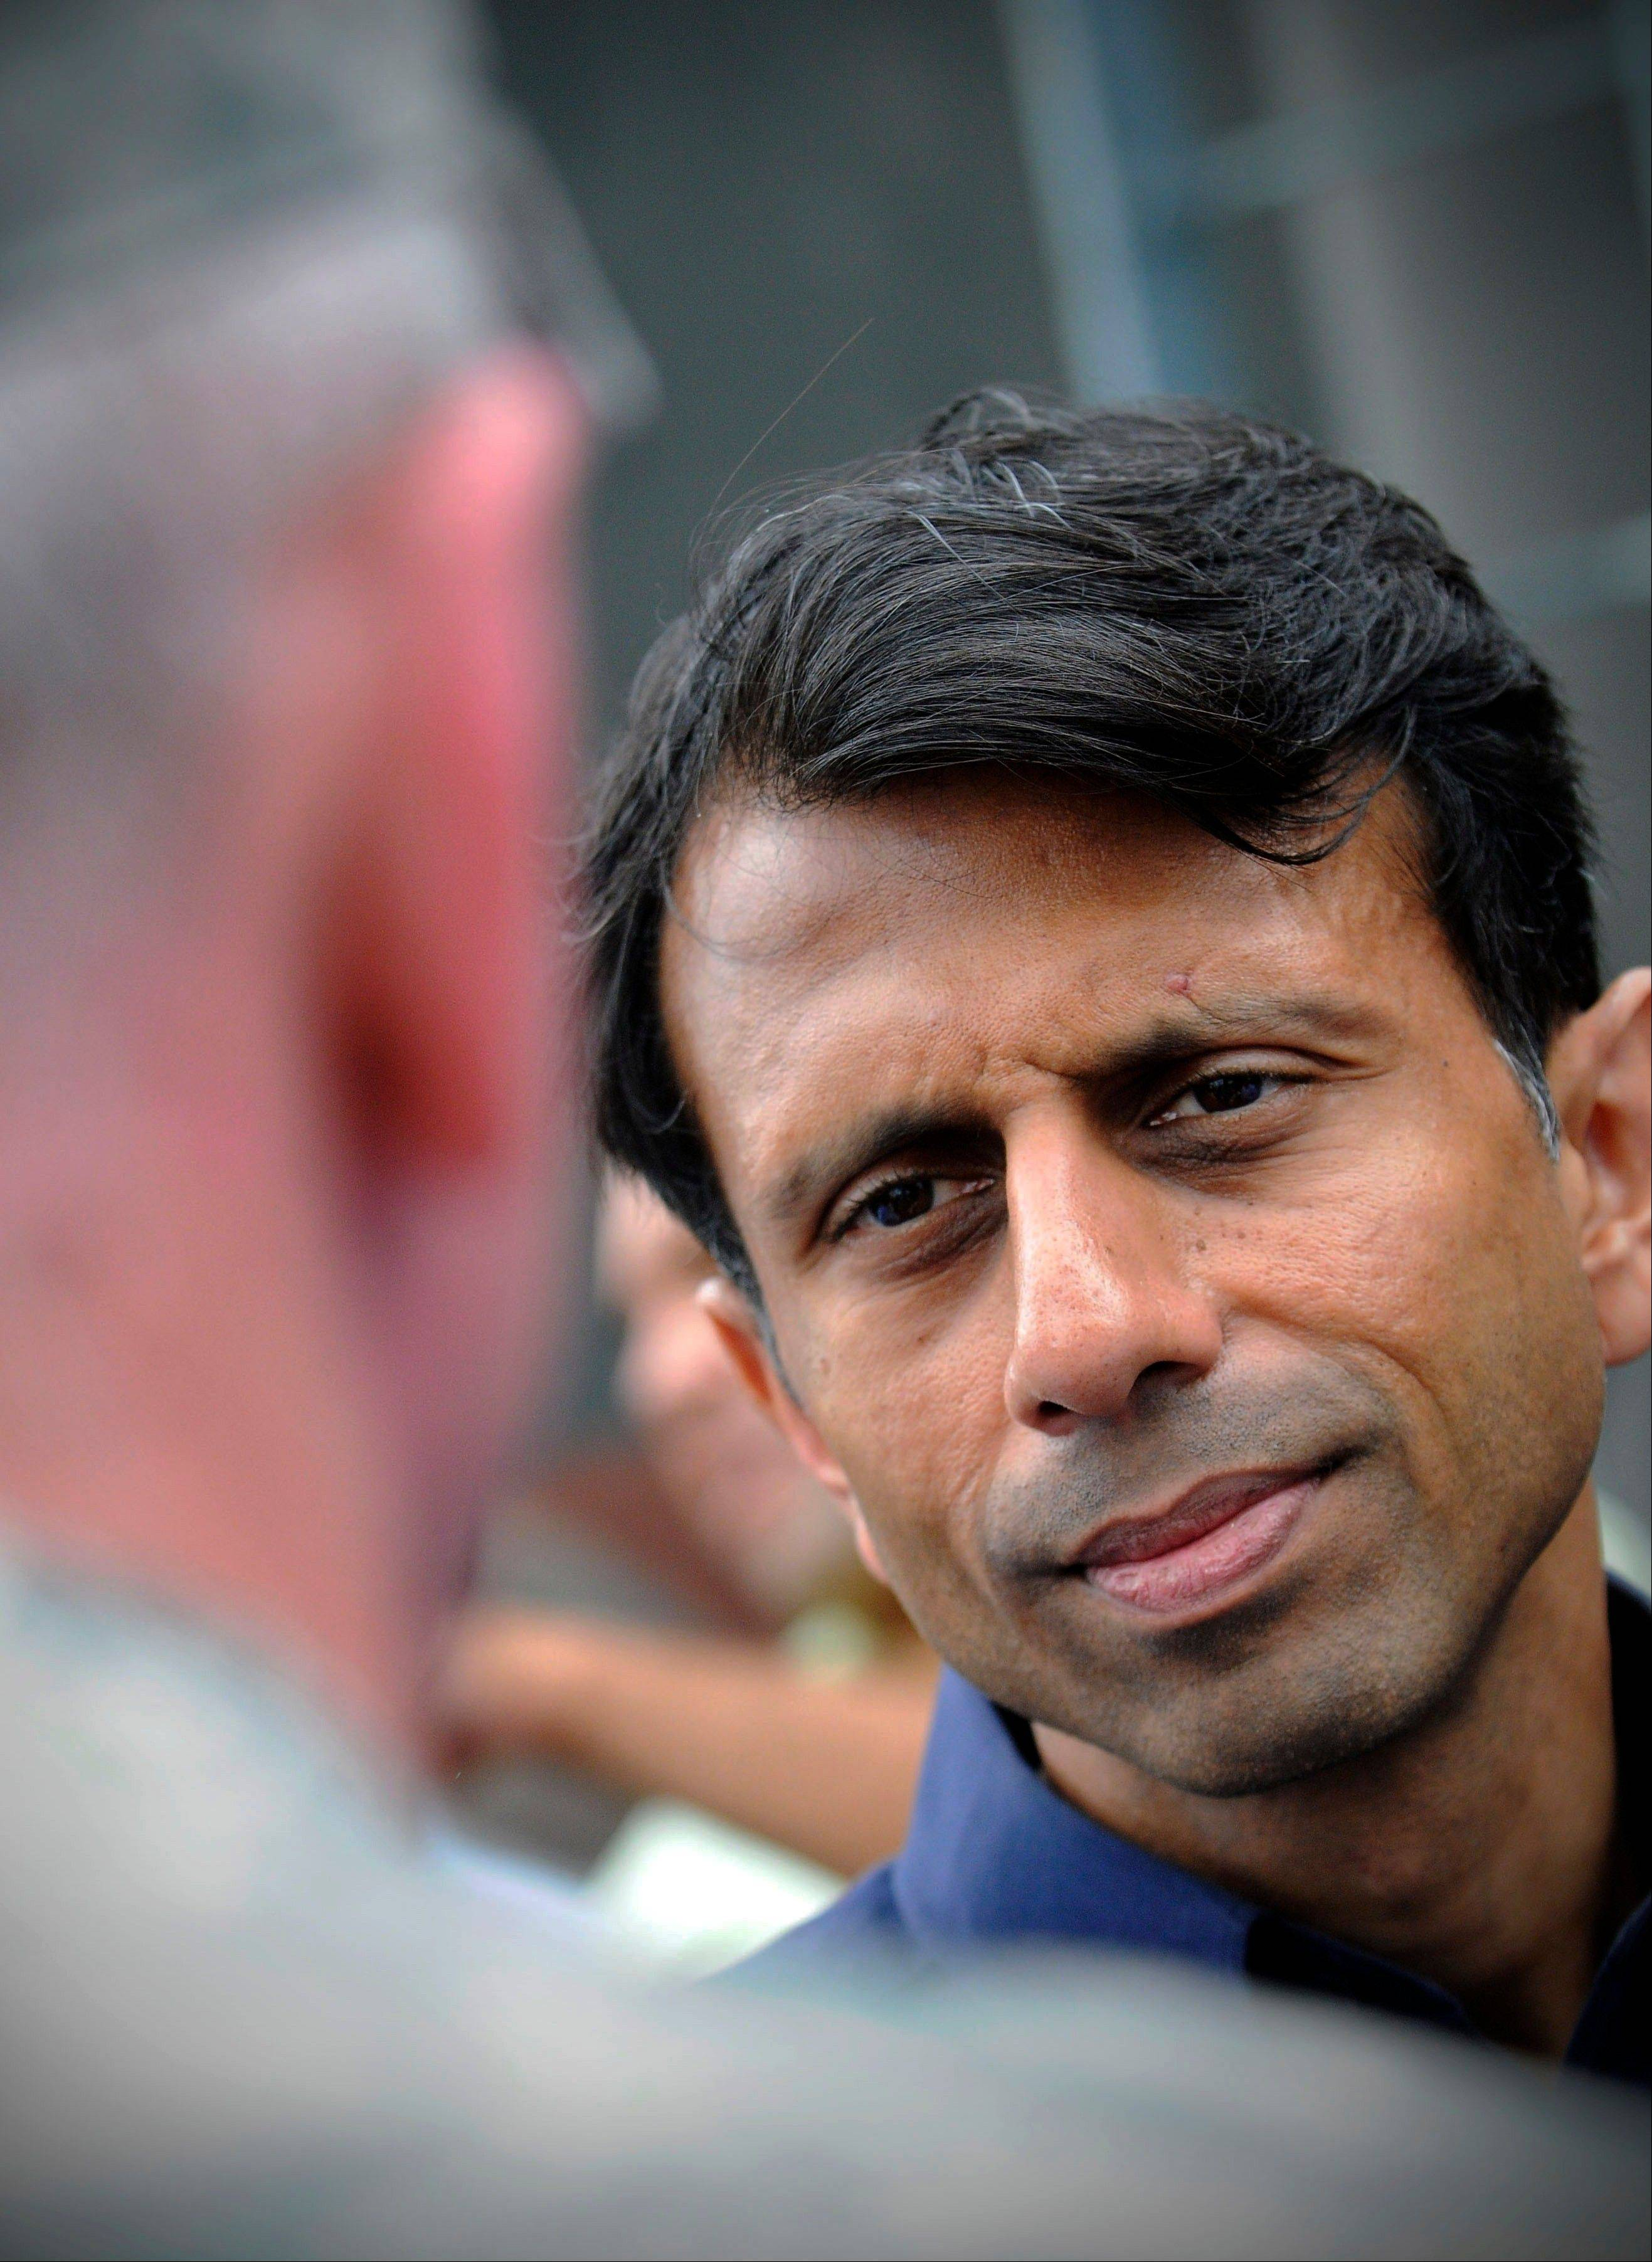 Louisiana Gov. Bobby Jindal listens to Army Corps of Engineers Col. Ed Fleming while touring the new levee wall and pumps at the 17th Street Canal in New Orleans, built after Hurricane Katrina, as Hurricane Isaac approaches, Tuesday, Aug. 28, 2012.